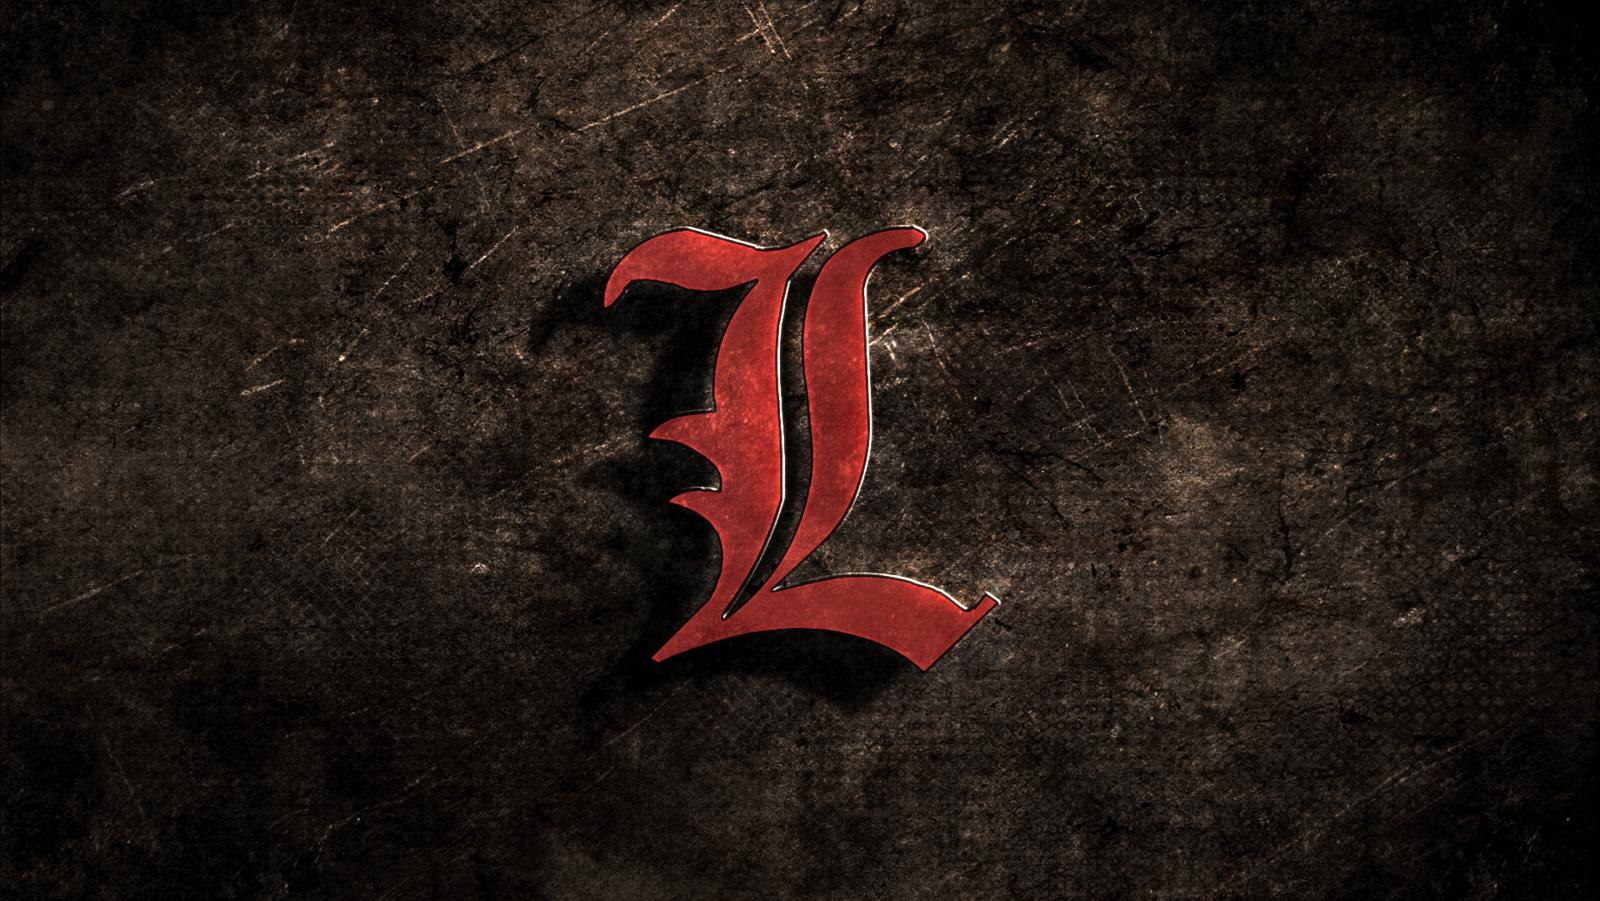 L Wallpapers